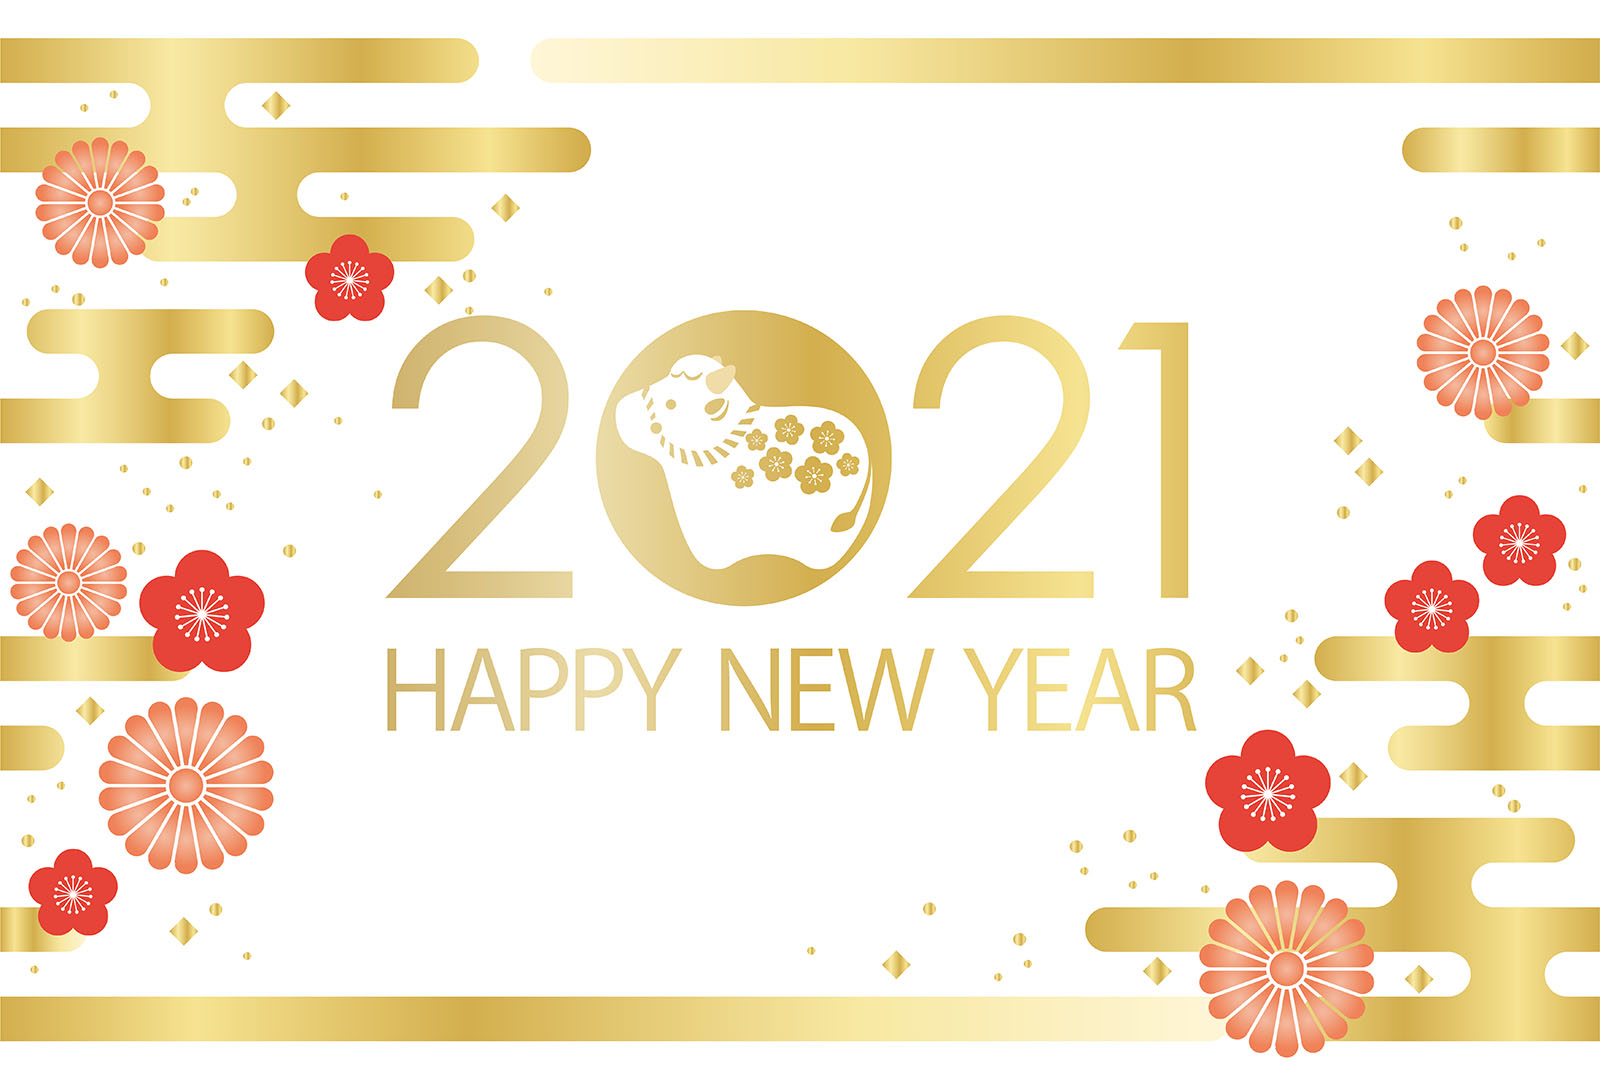 2021 Year Of The Ox Greeting Card Template Download Free Vectors Clipart Graphics Vector Art